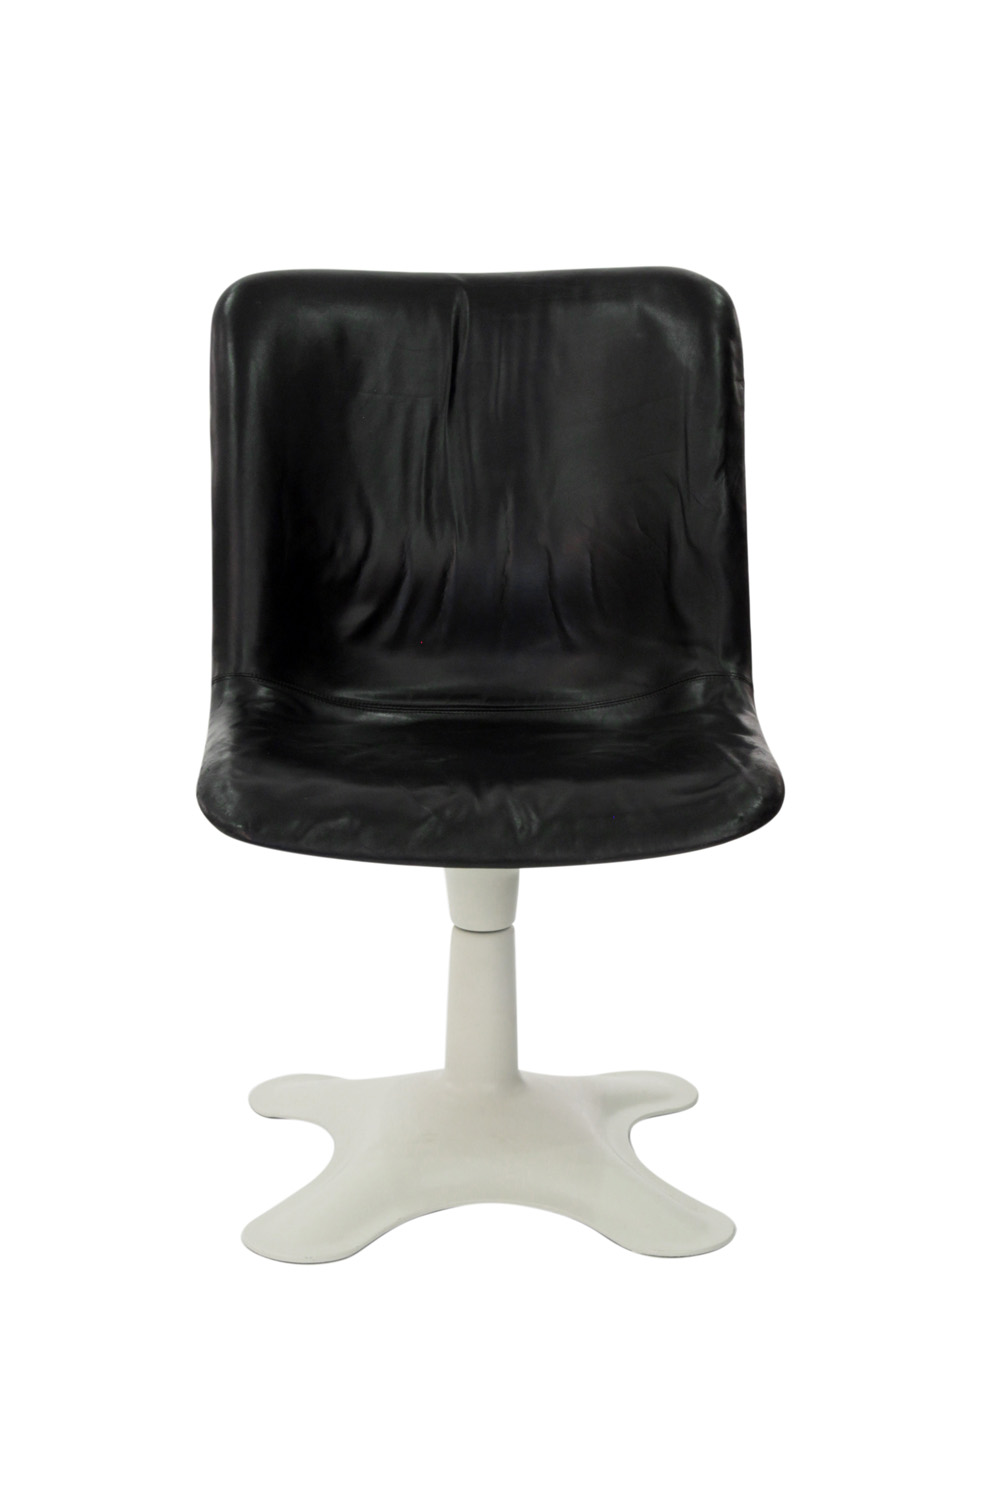 Kukkapuro 65 blk leather+white ba loungechairs107 detail1 hires.jpg